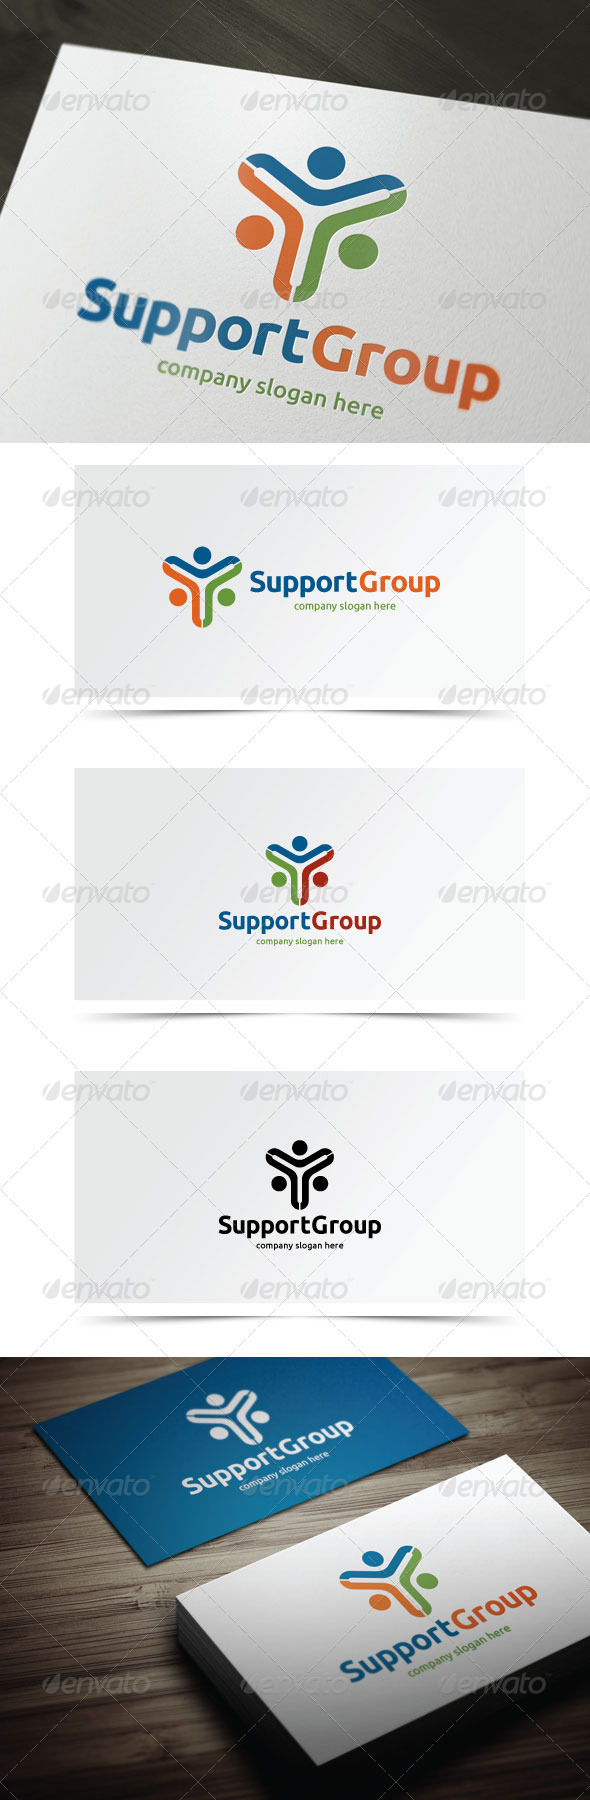 GraphicRiver Support Group 6147546